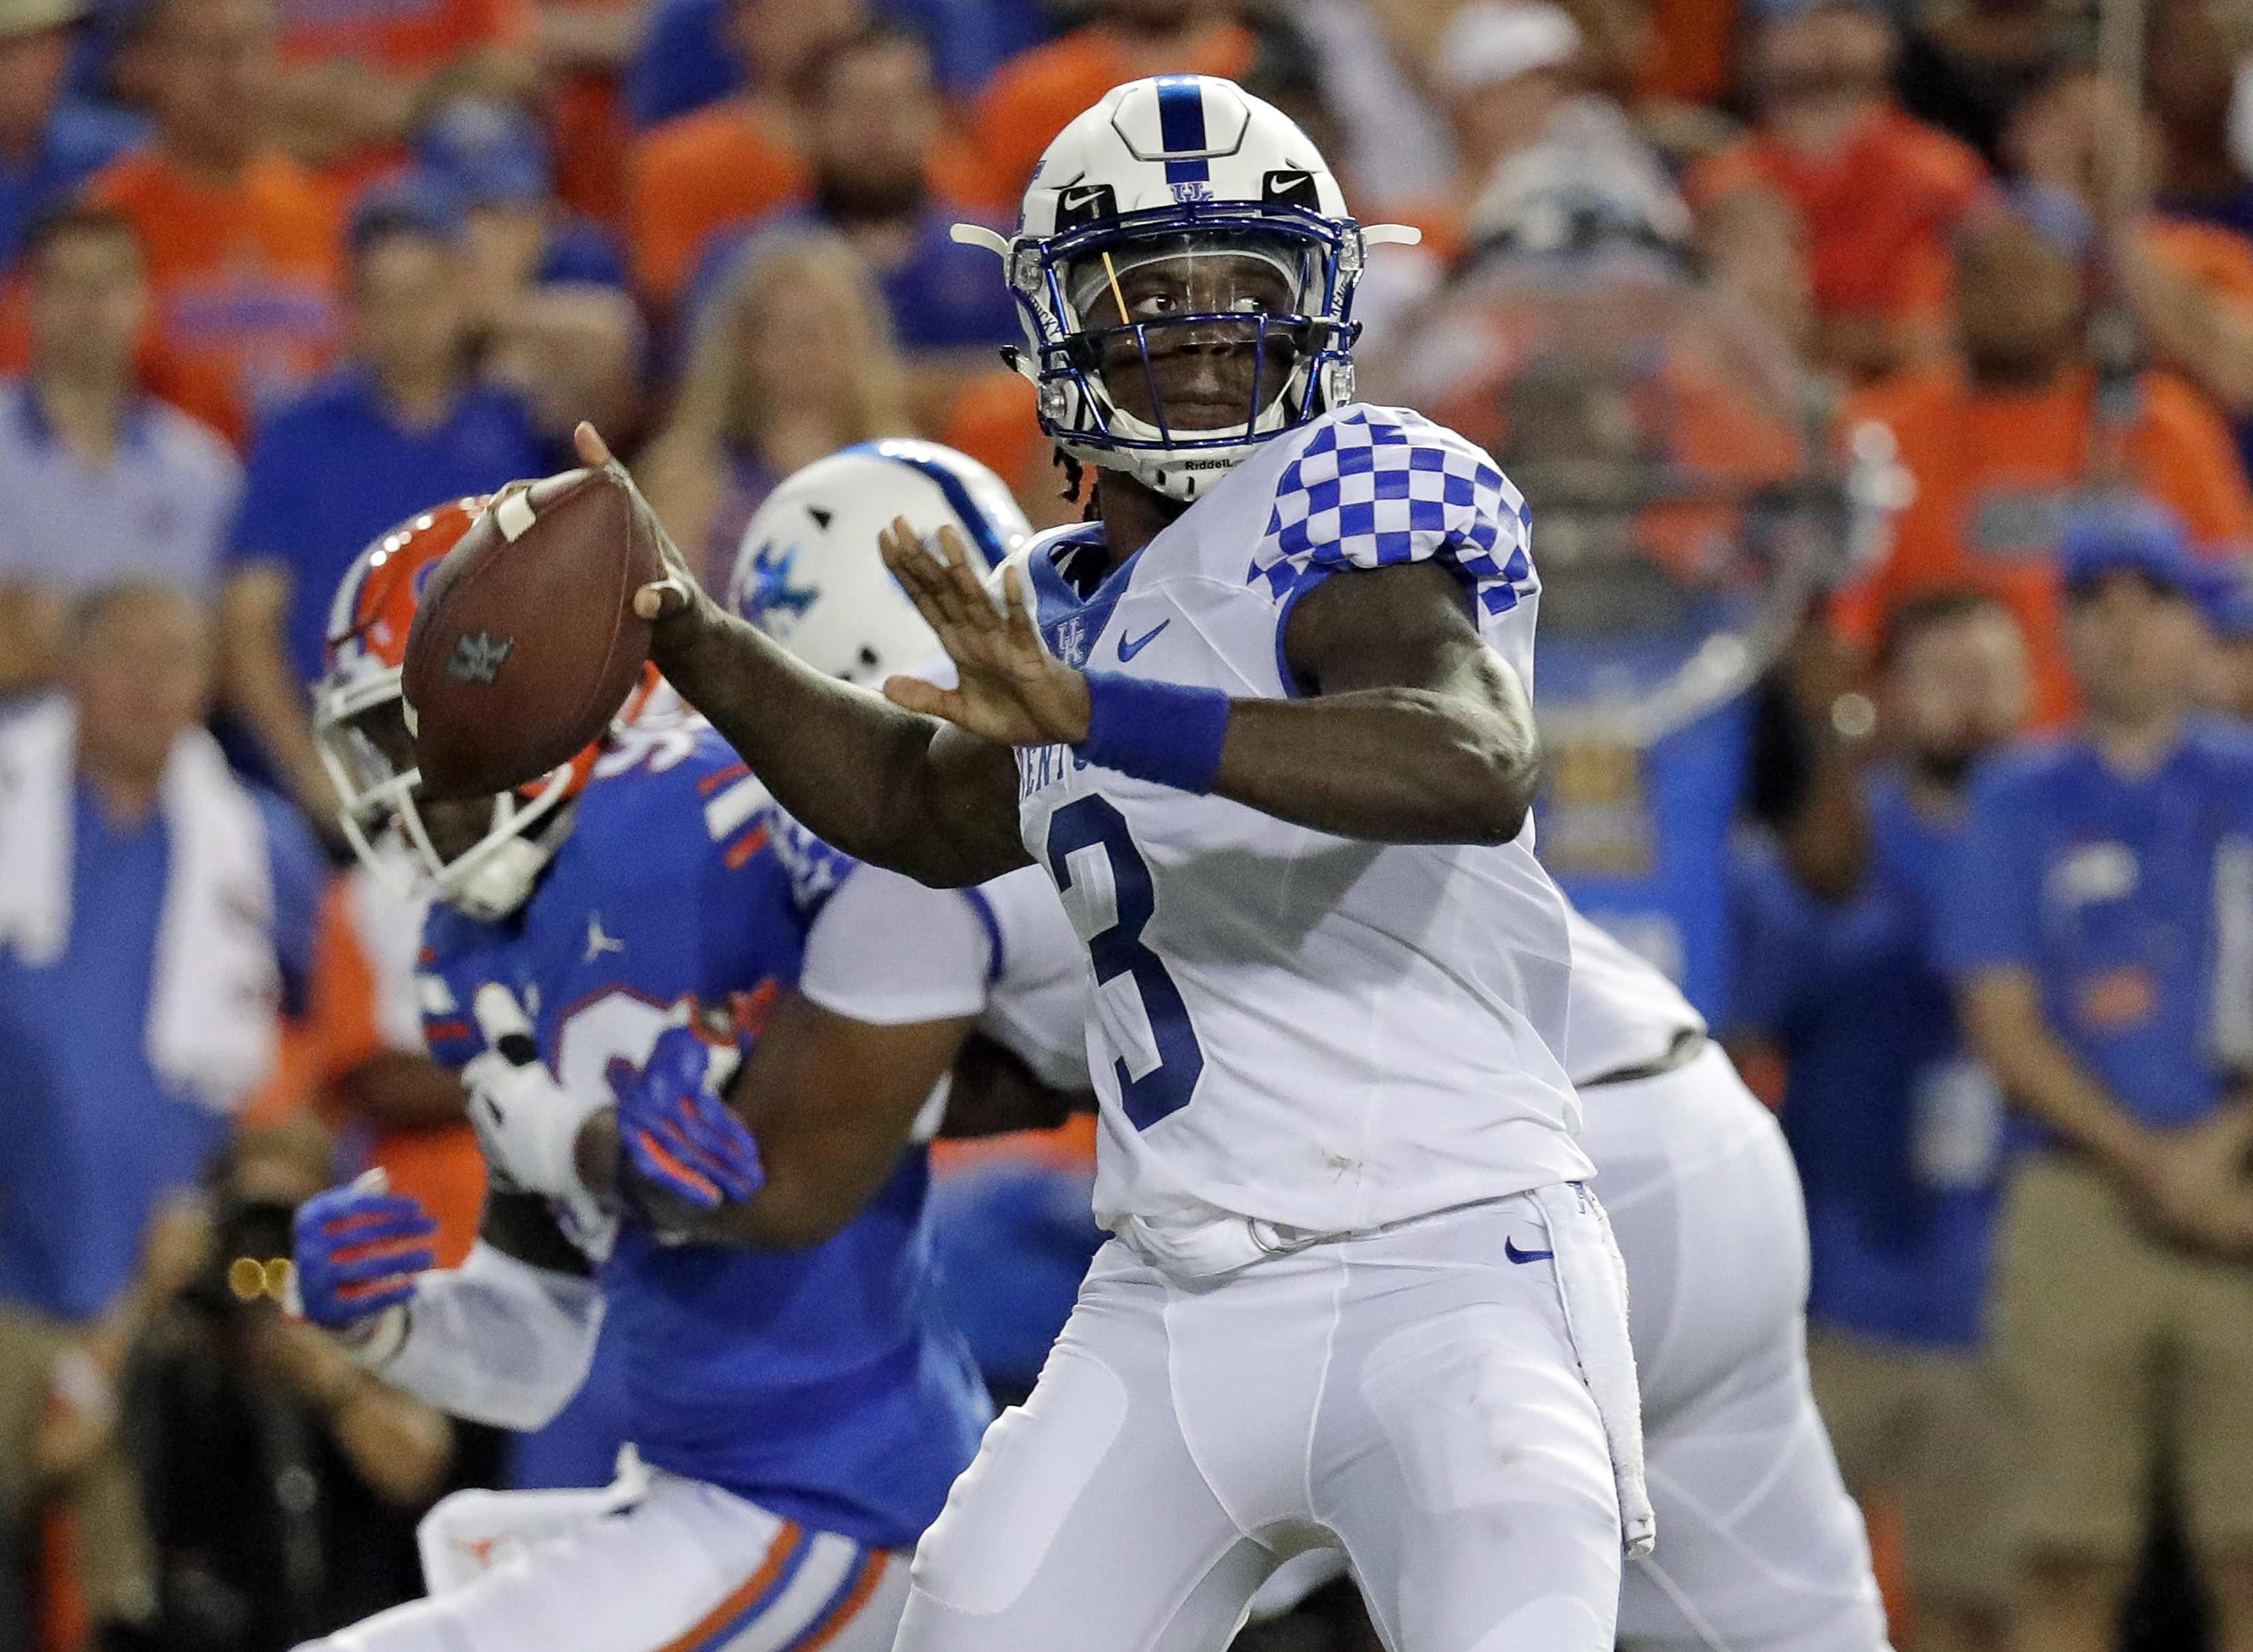 Kentucky quarterback Wilson unfazed by turnover-prone start